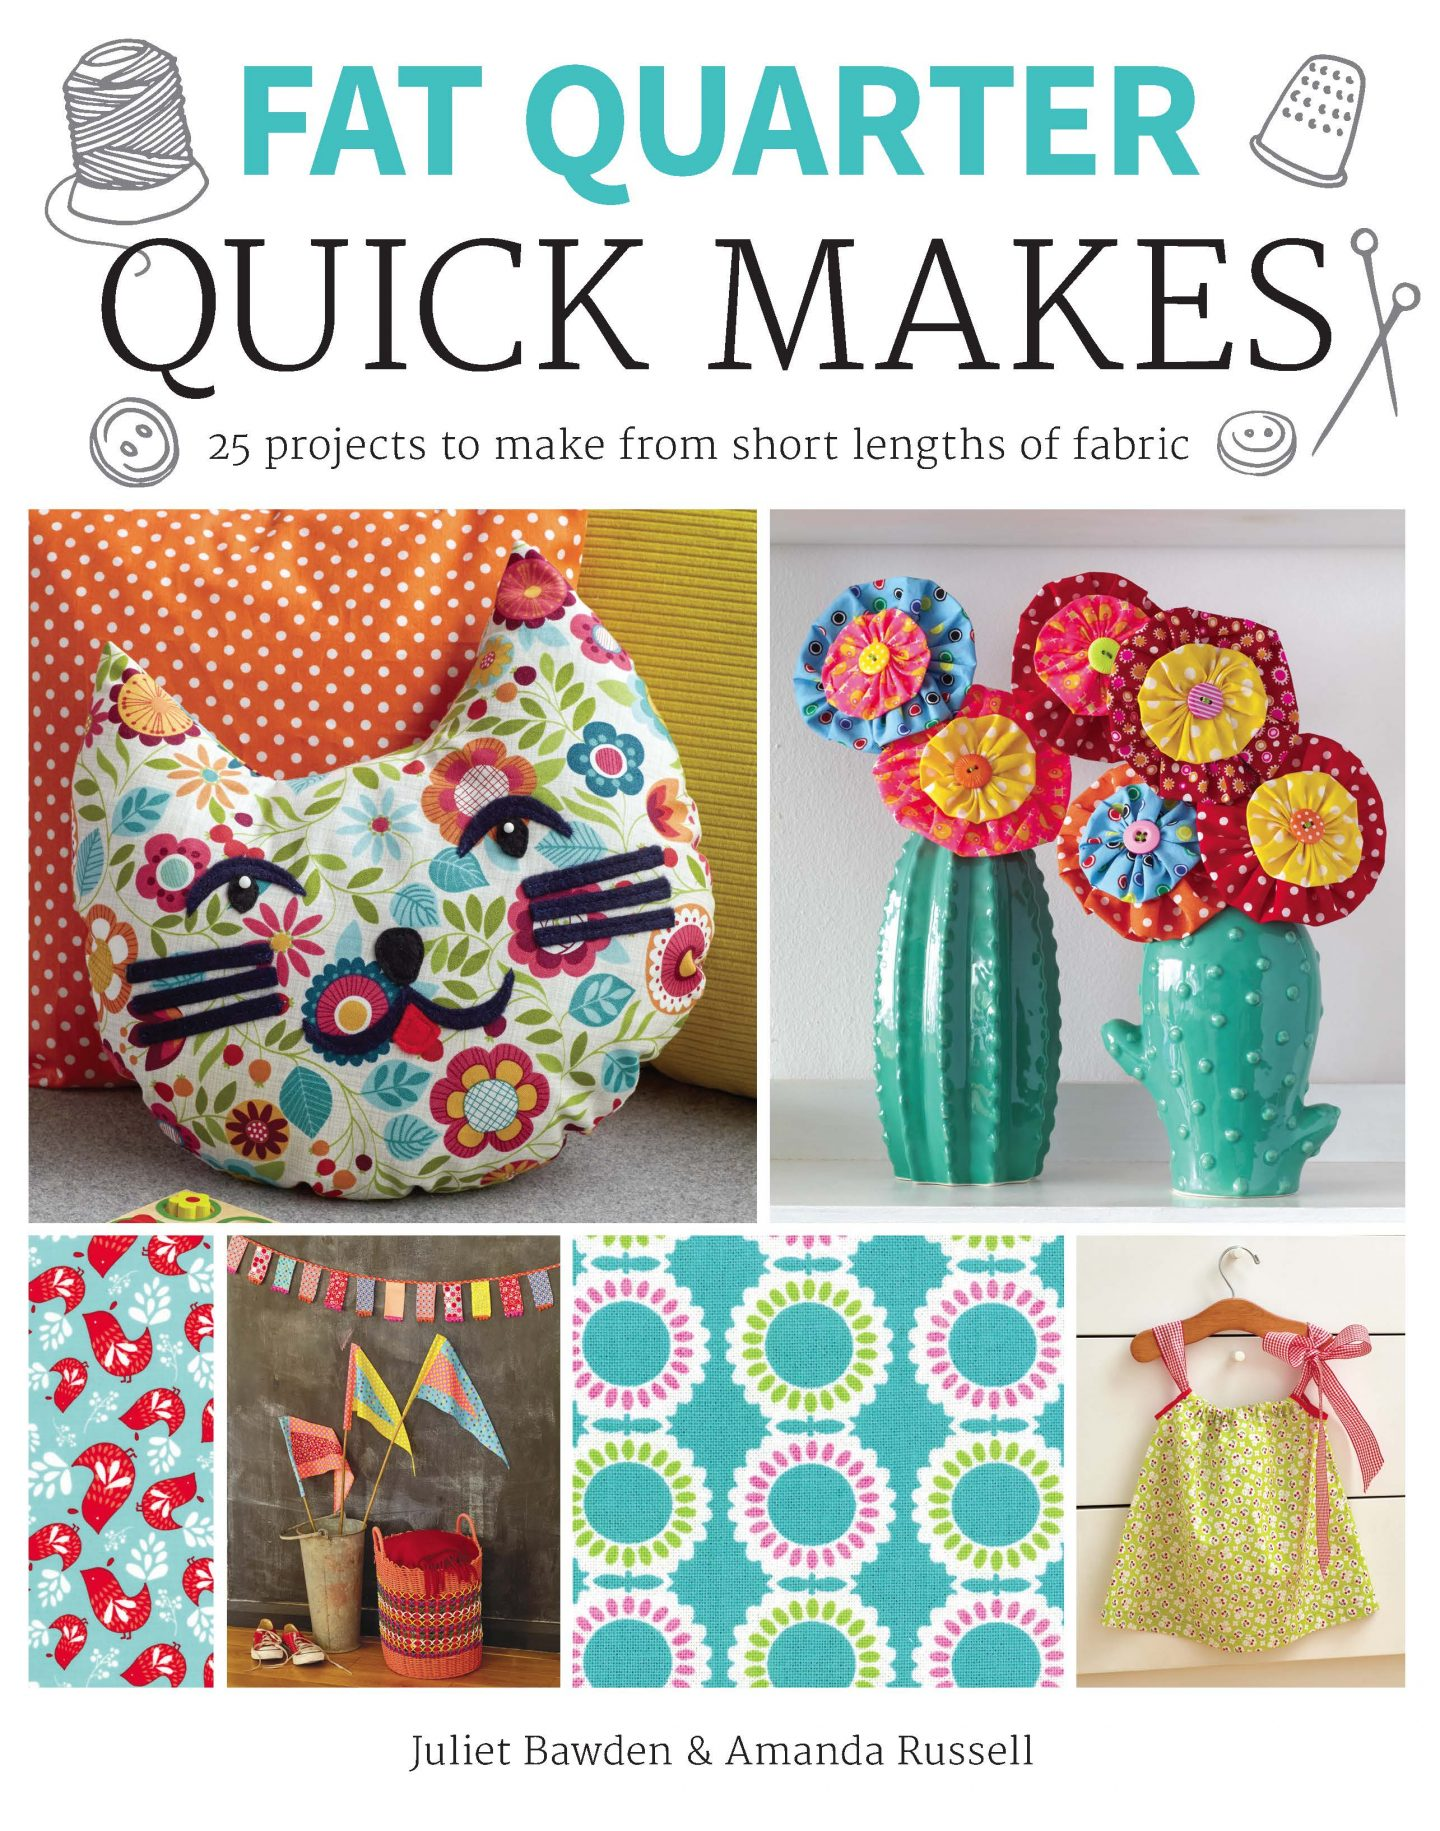 Fat Quarter Quick Makes Book